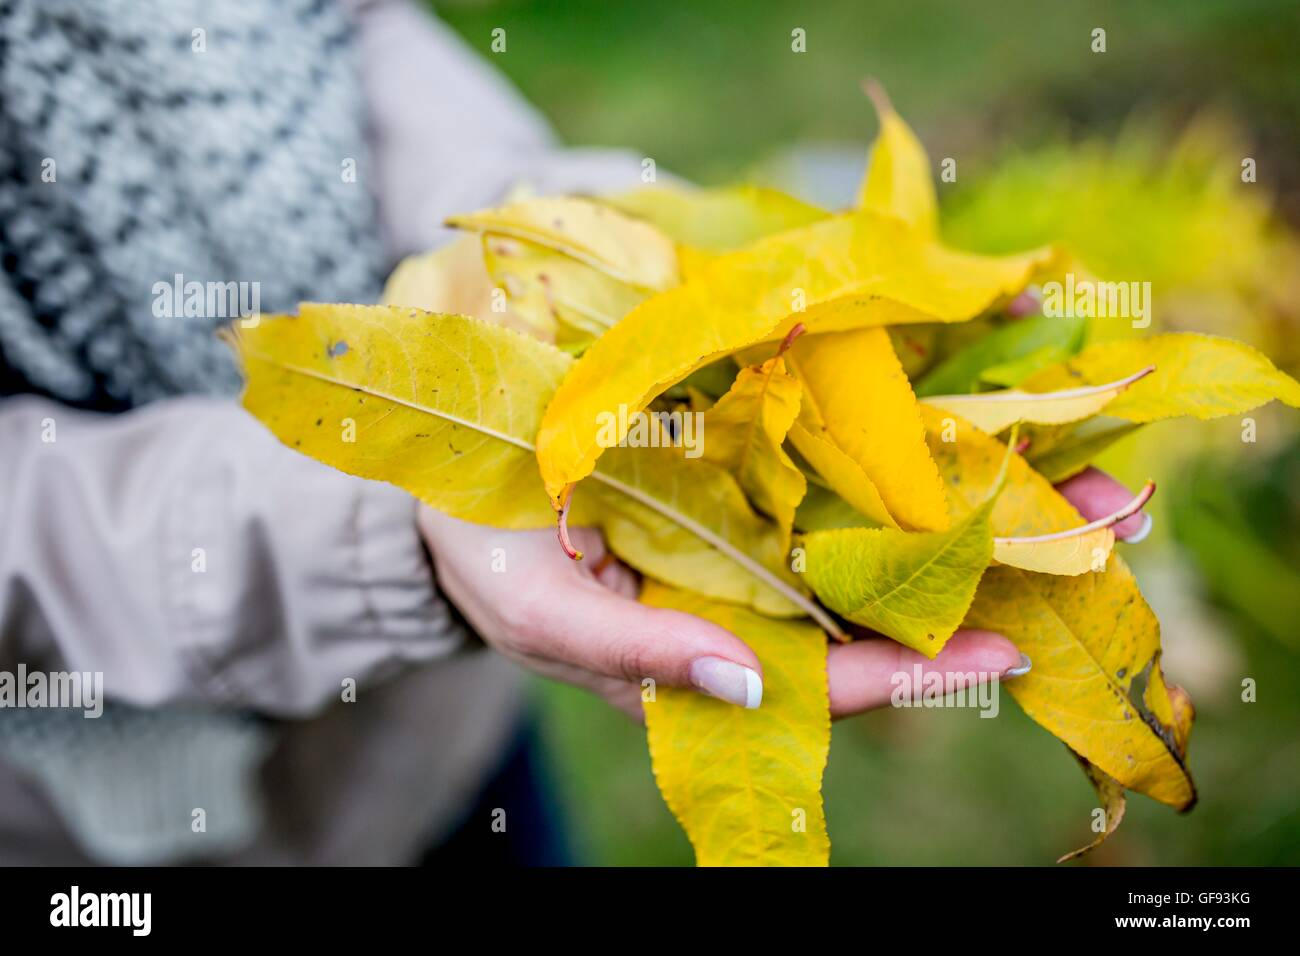 MODEL RELEASED. Hand holding autumn leaves, close-up. - Stock Image